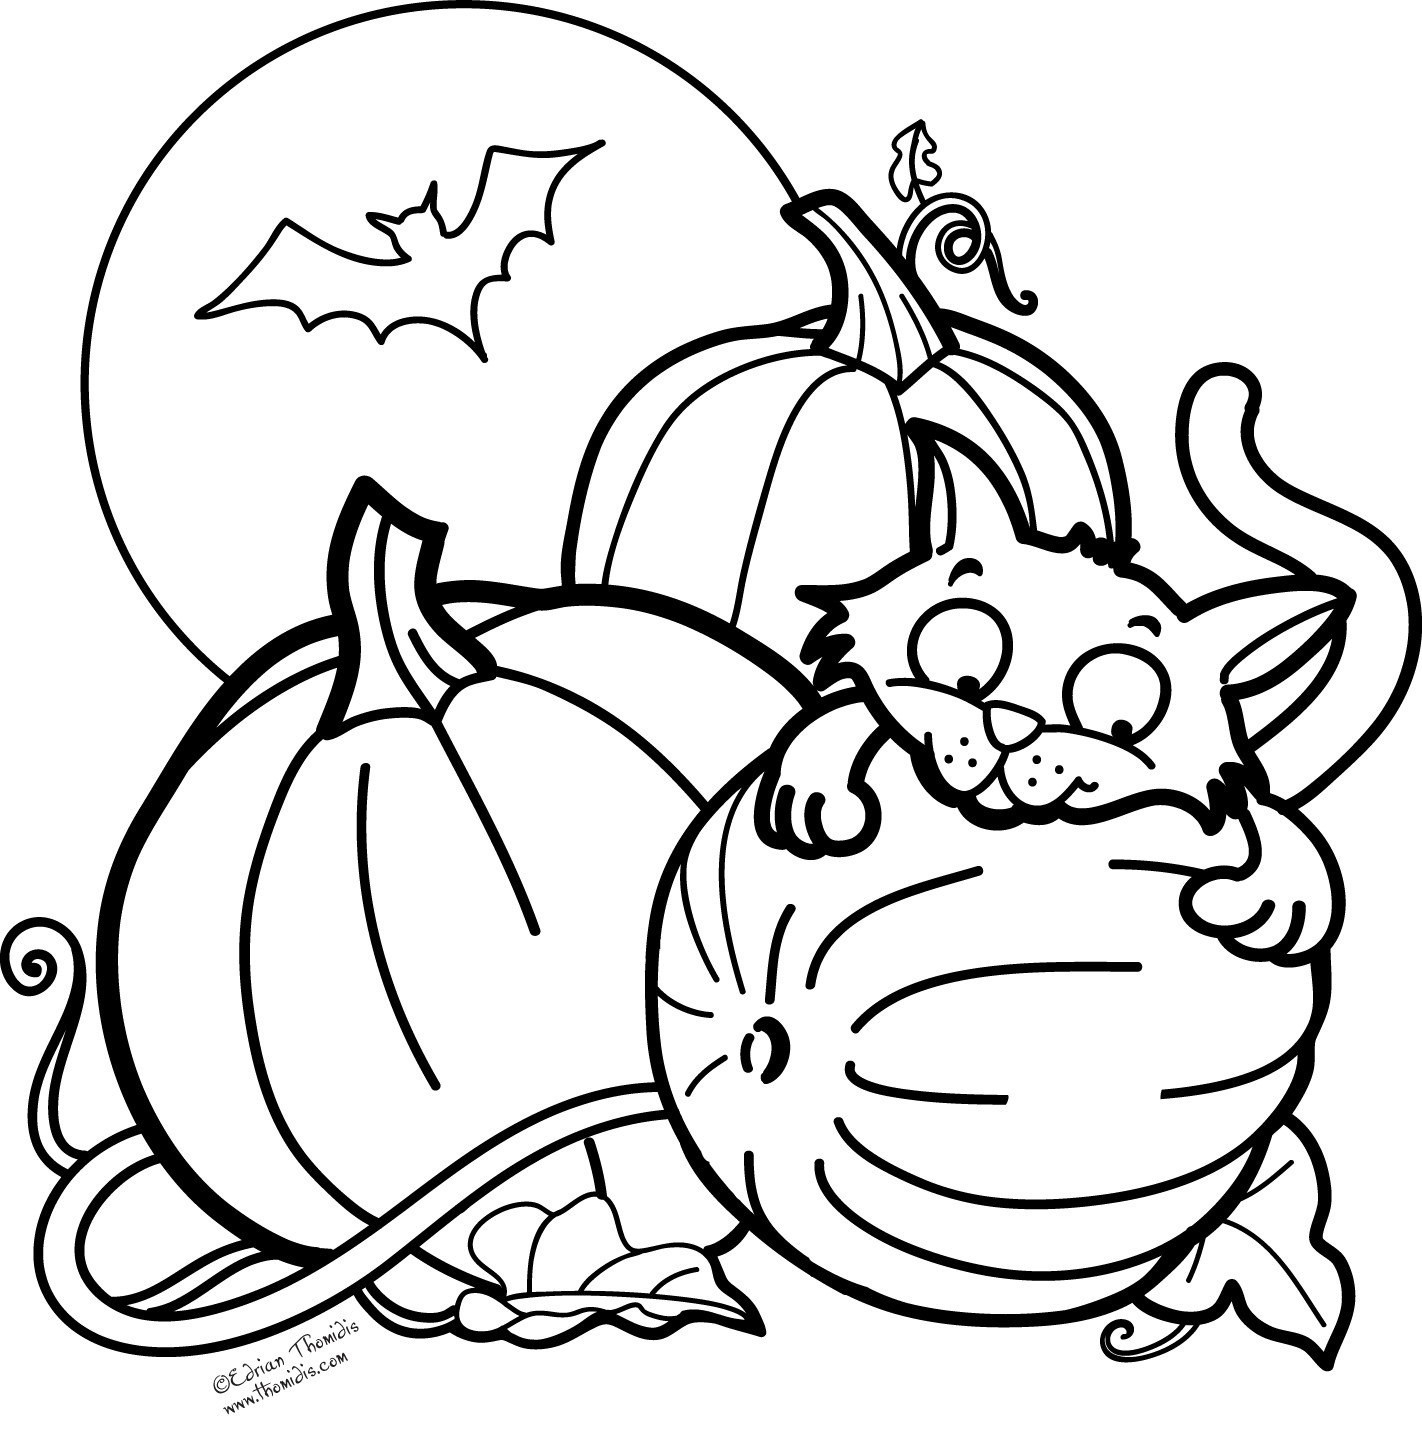 Cute Halloween Coloring Pages Printable Coloring Ideas Splendi Halloween Coloring Free Printables Cute